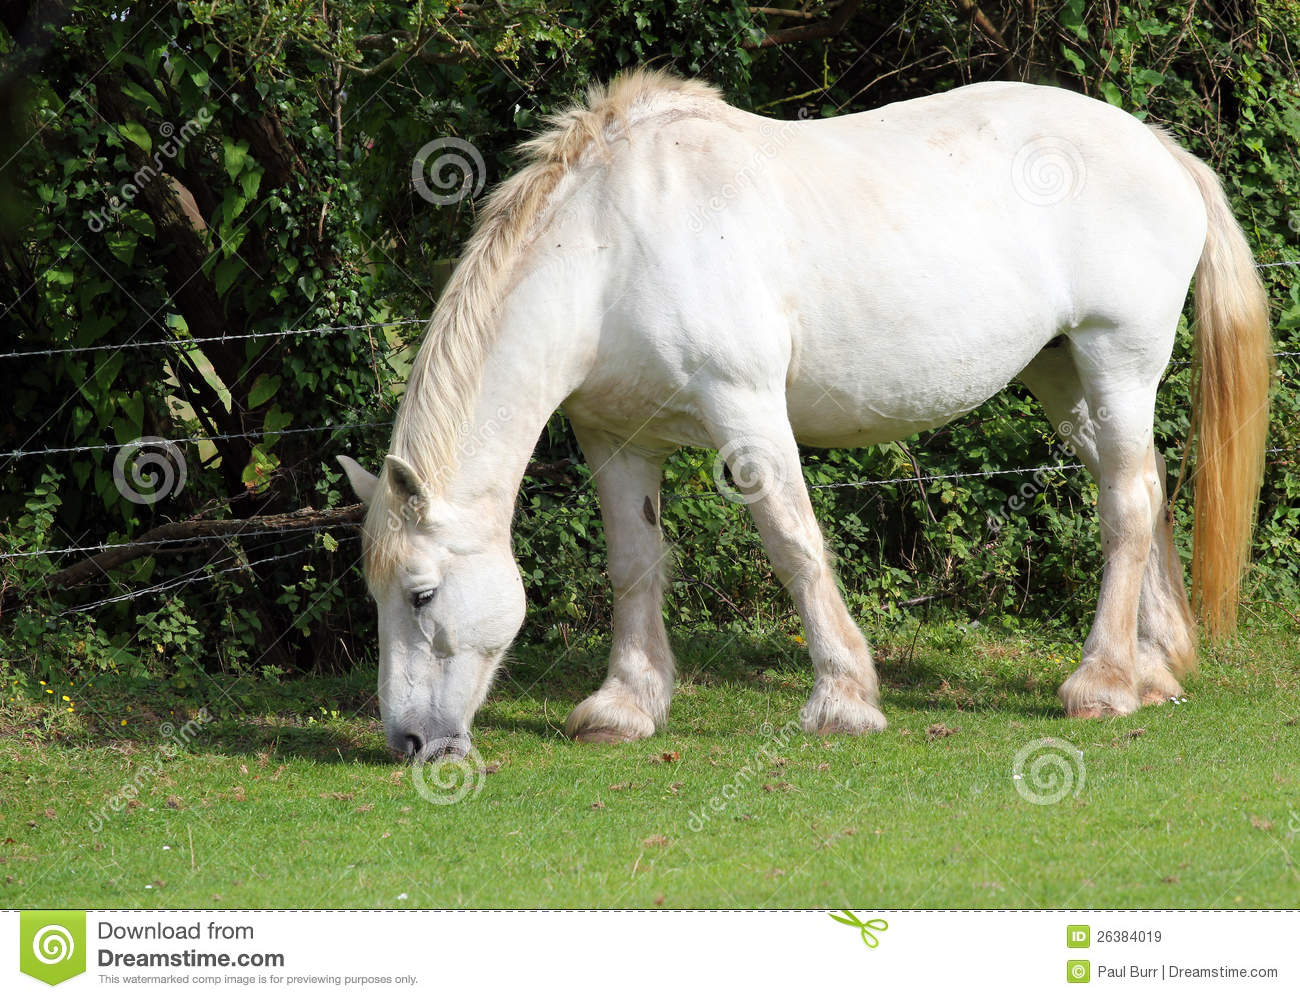 920 Shire Horse Photos Free Royalty Free Stock Photos From Dreamstime